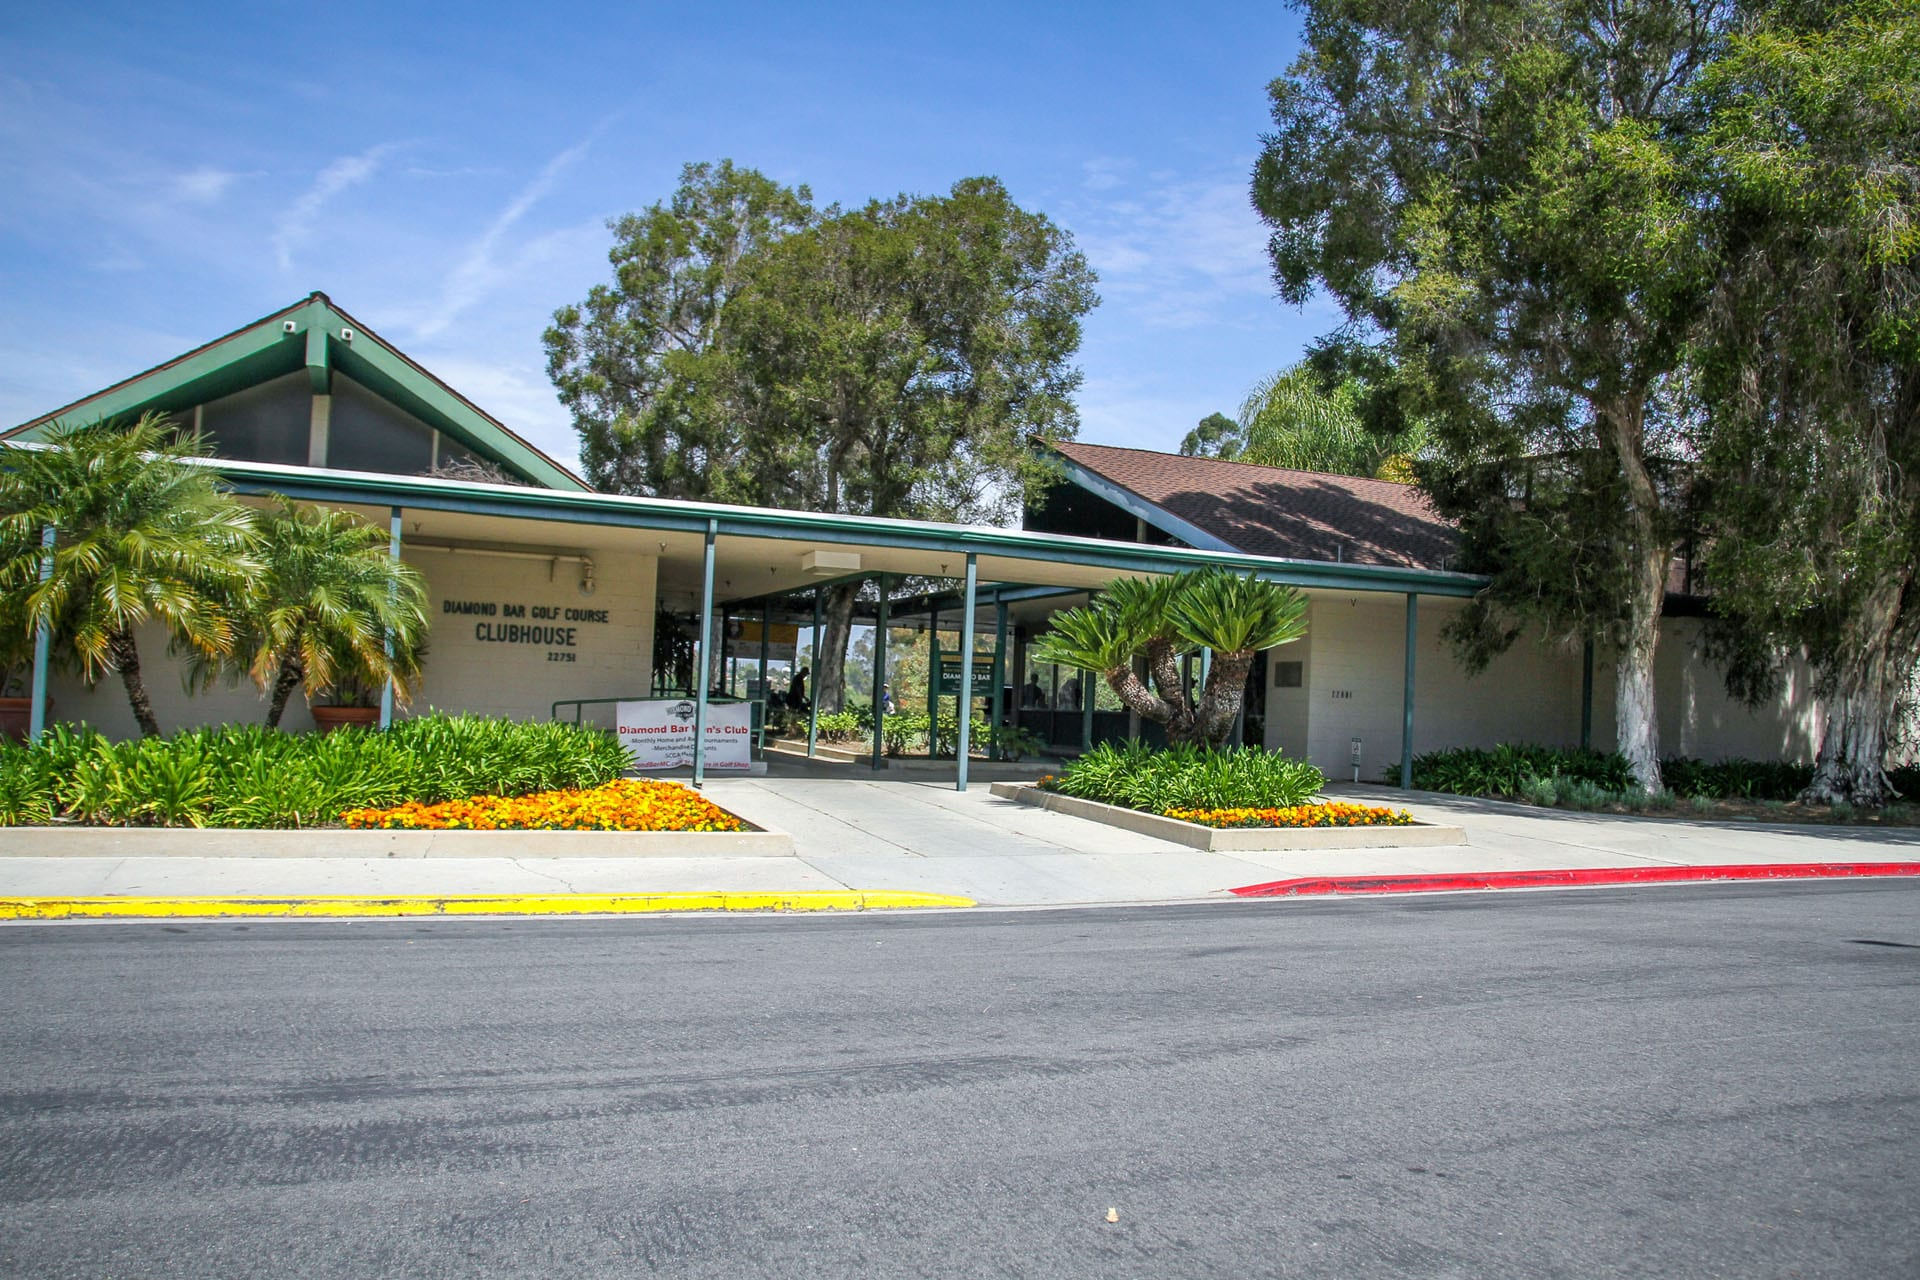 Diamond Bar Golf Course Clubhouse front